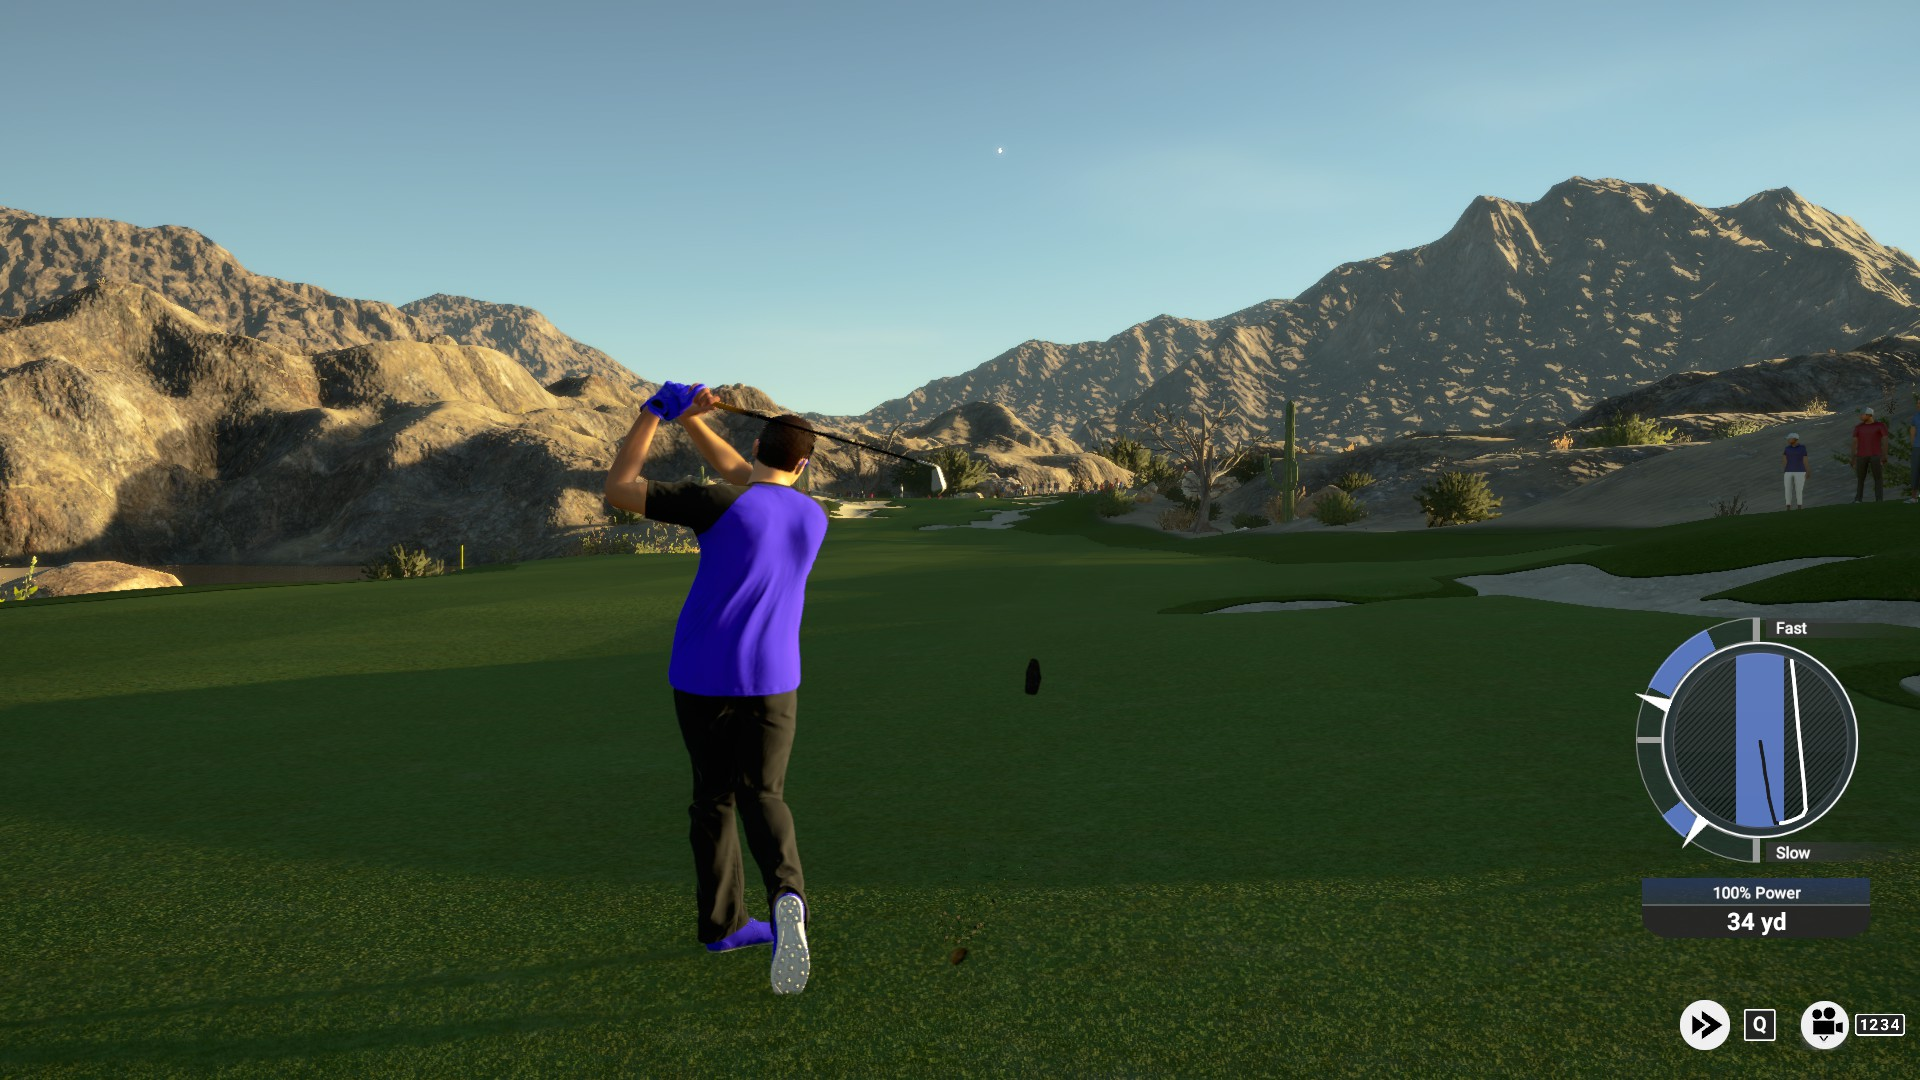 The Golf Club 2019 will be getting DLC and a physical release screenshot